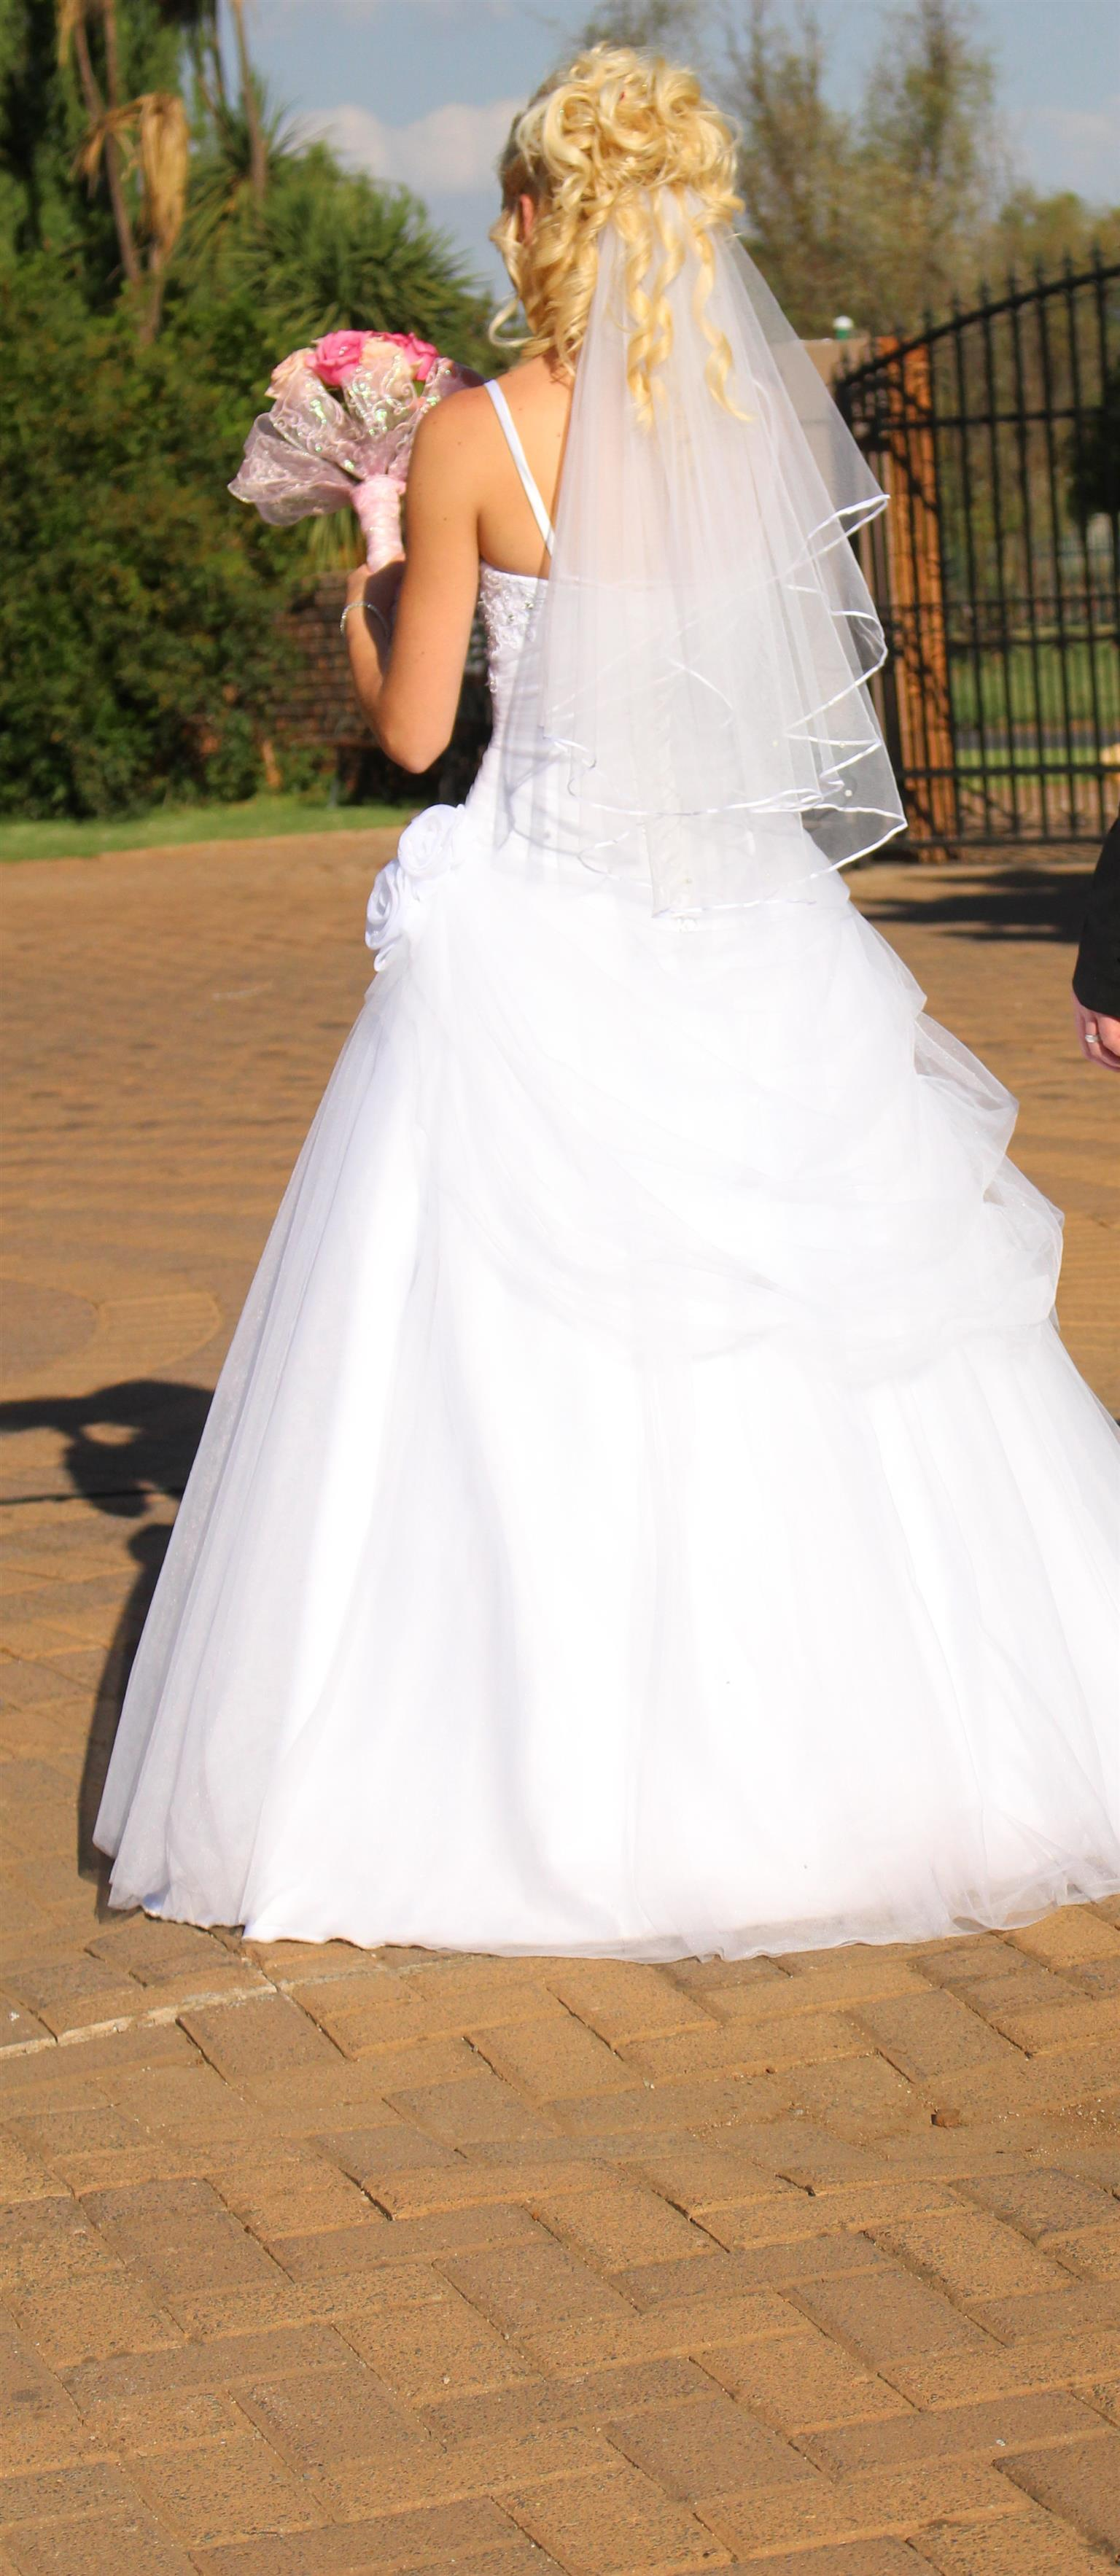 wedding dress & veil for sale